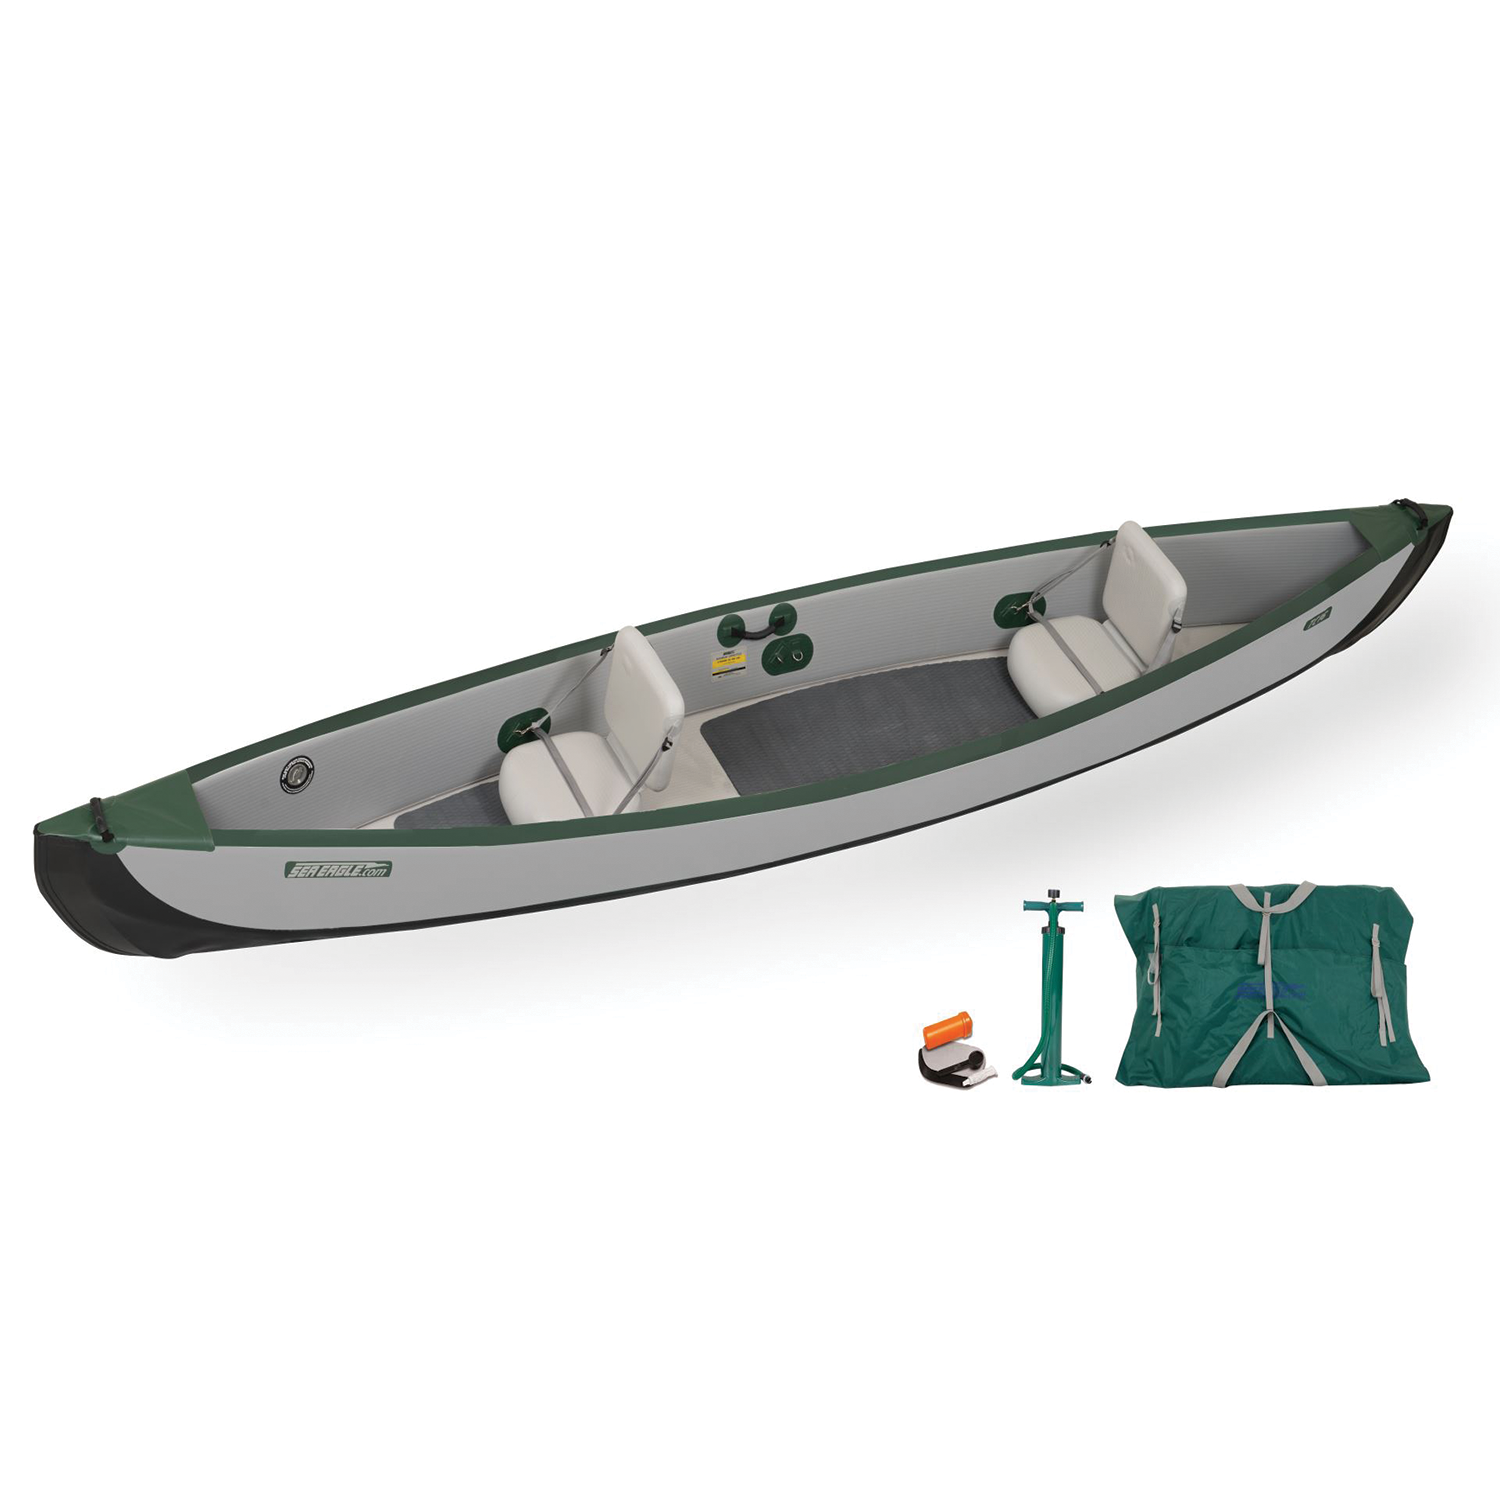 inflatableboats4less.com